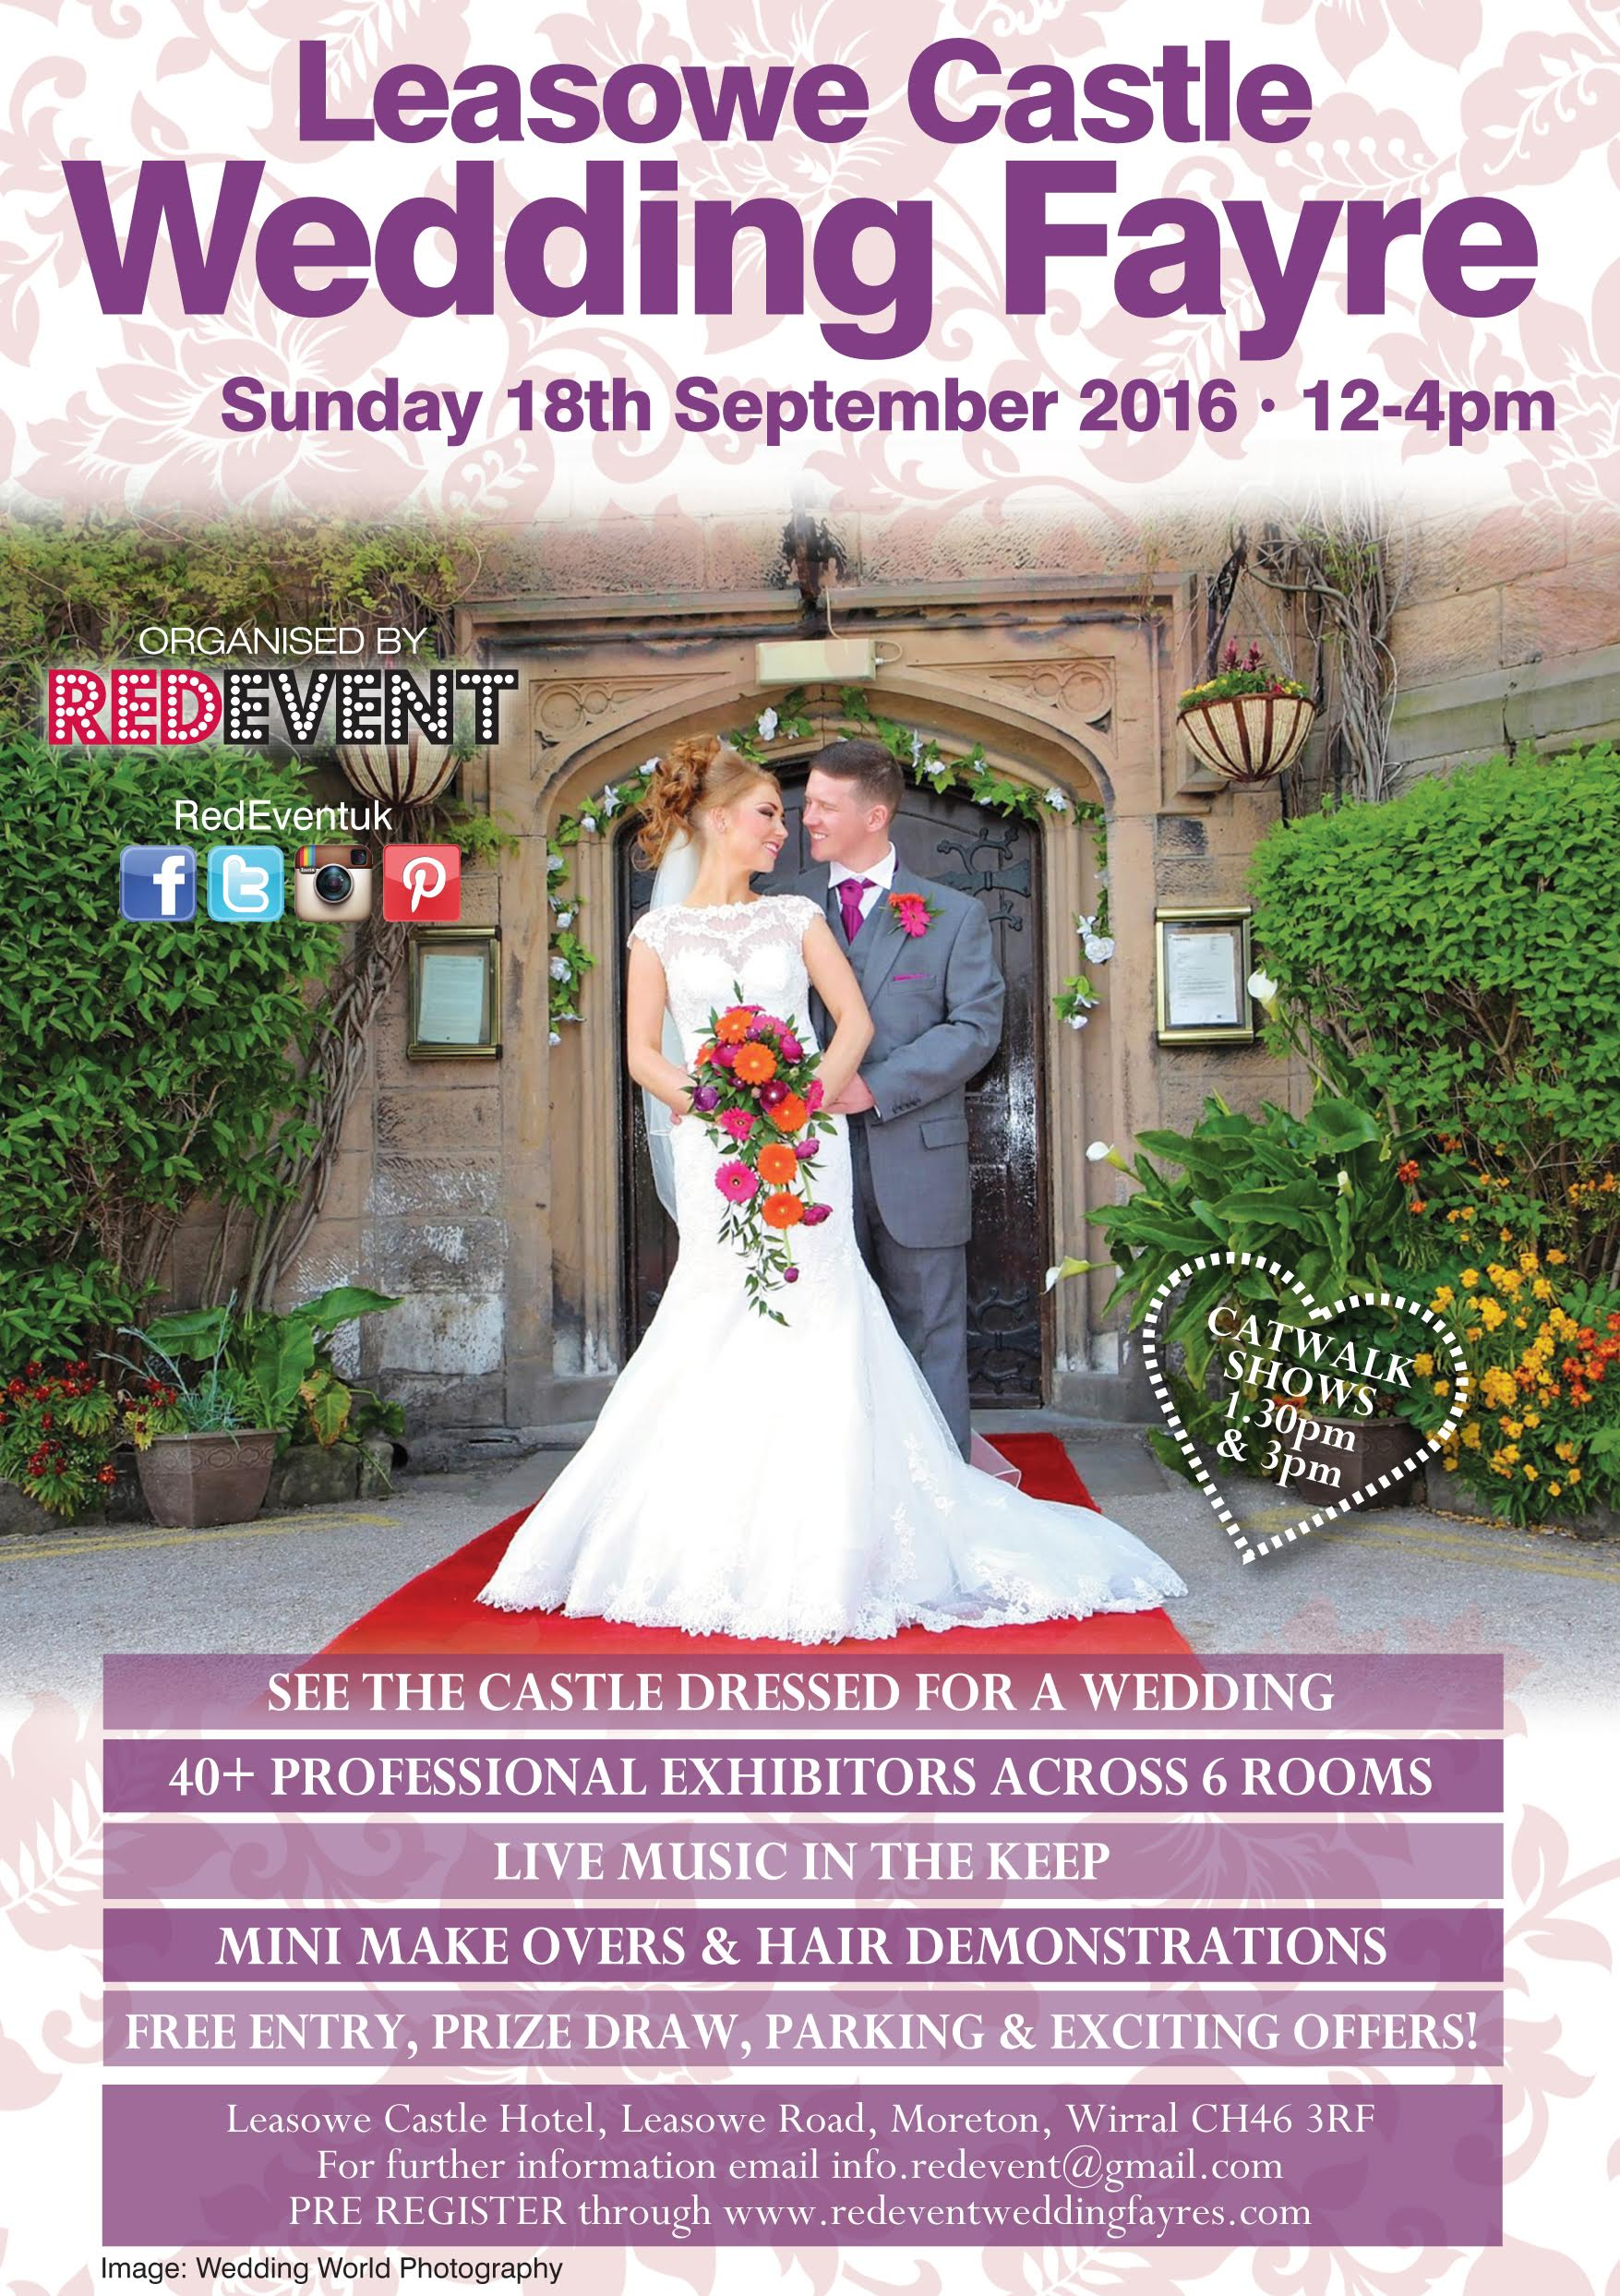 Leasowe Castle North West Wedding Fayre